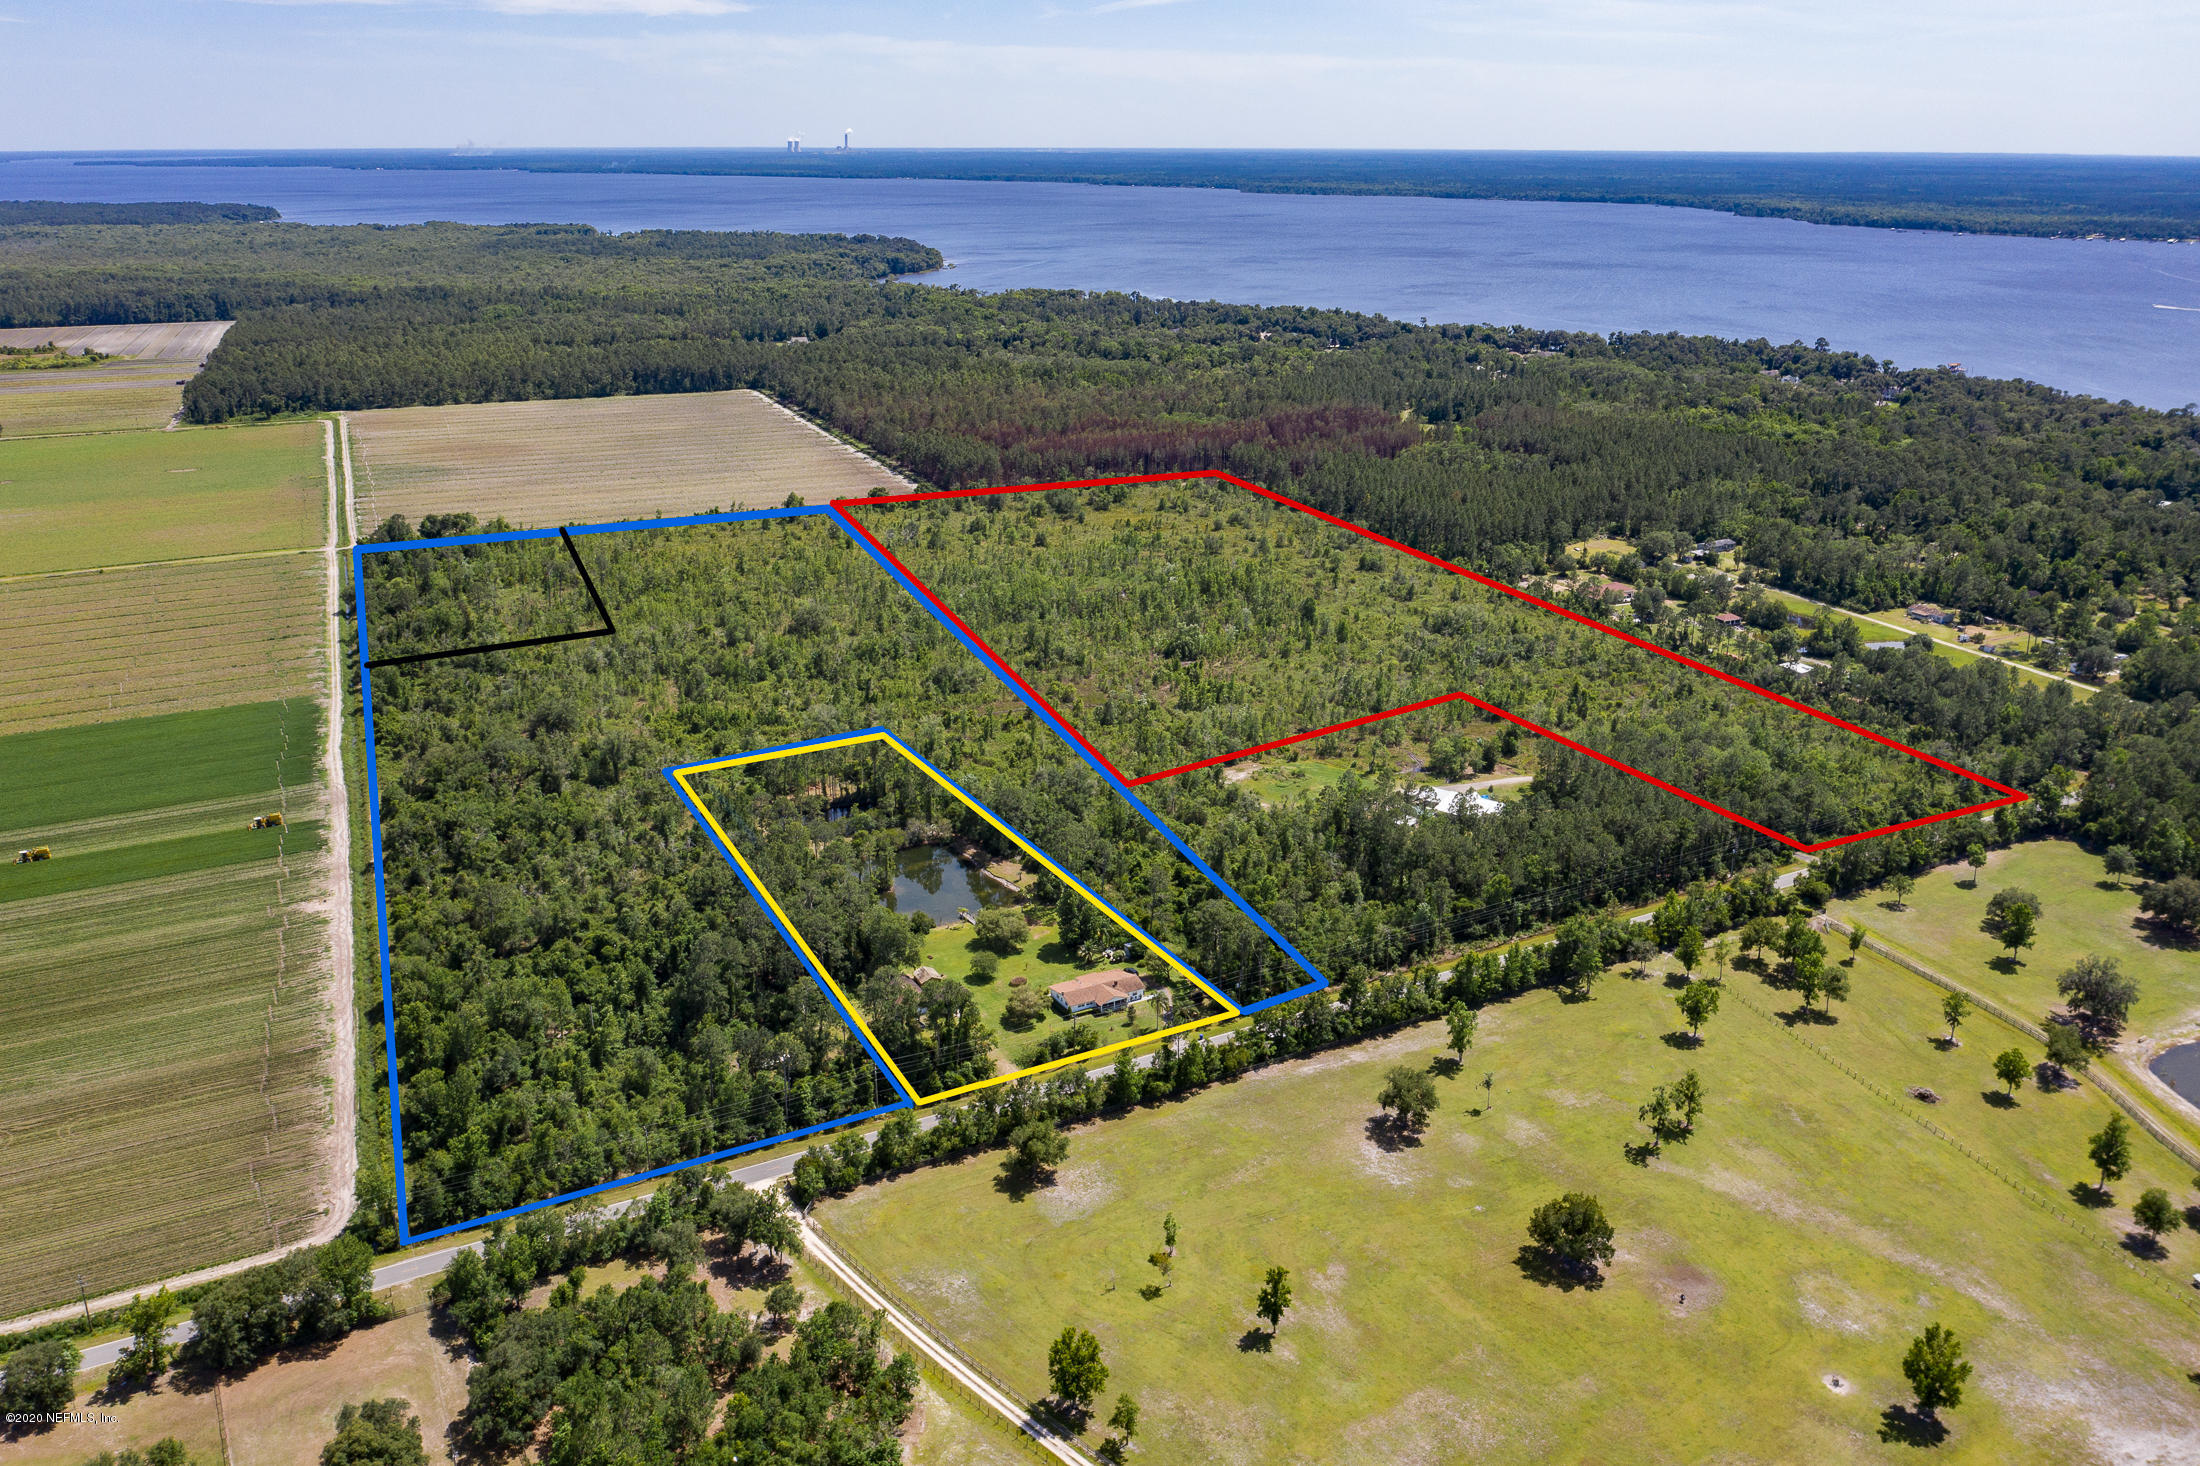 0 COUNTY ROAD 208-A, ST AUGUSTINE, FLORIDA 32092, ,Vacant land,For sale,COUNTY ROAD 208-A,1053978